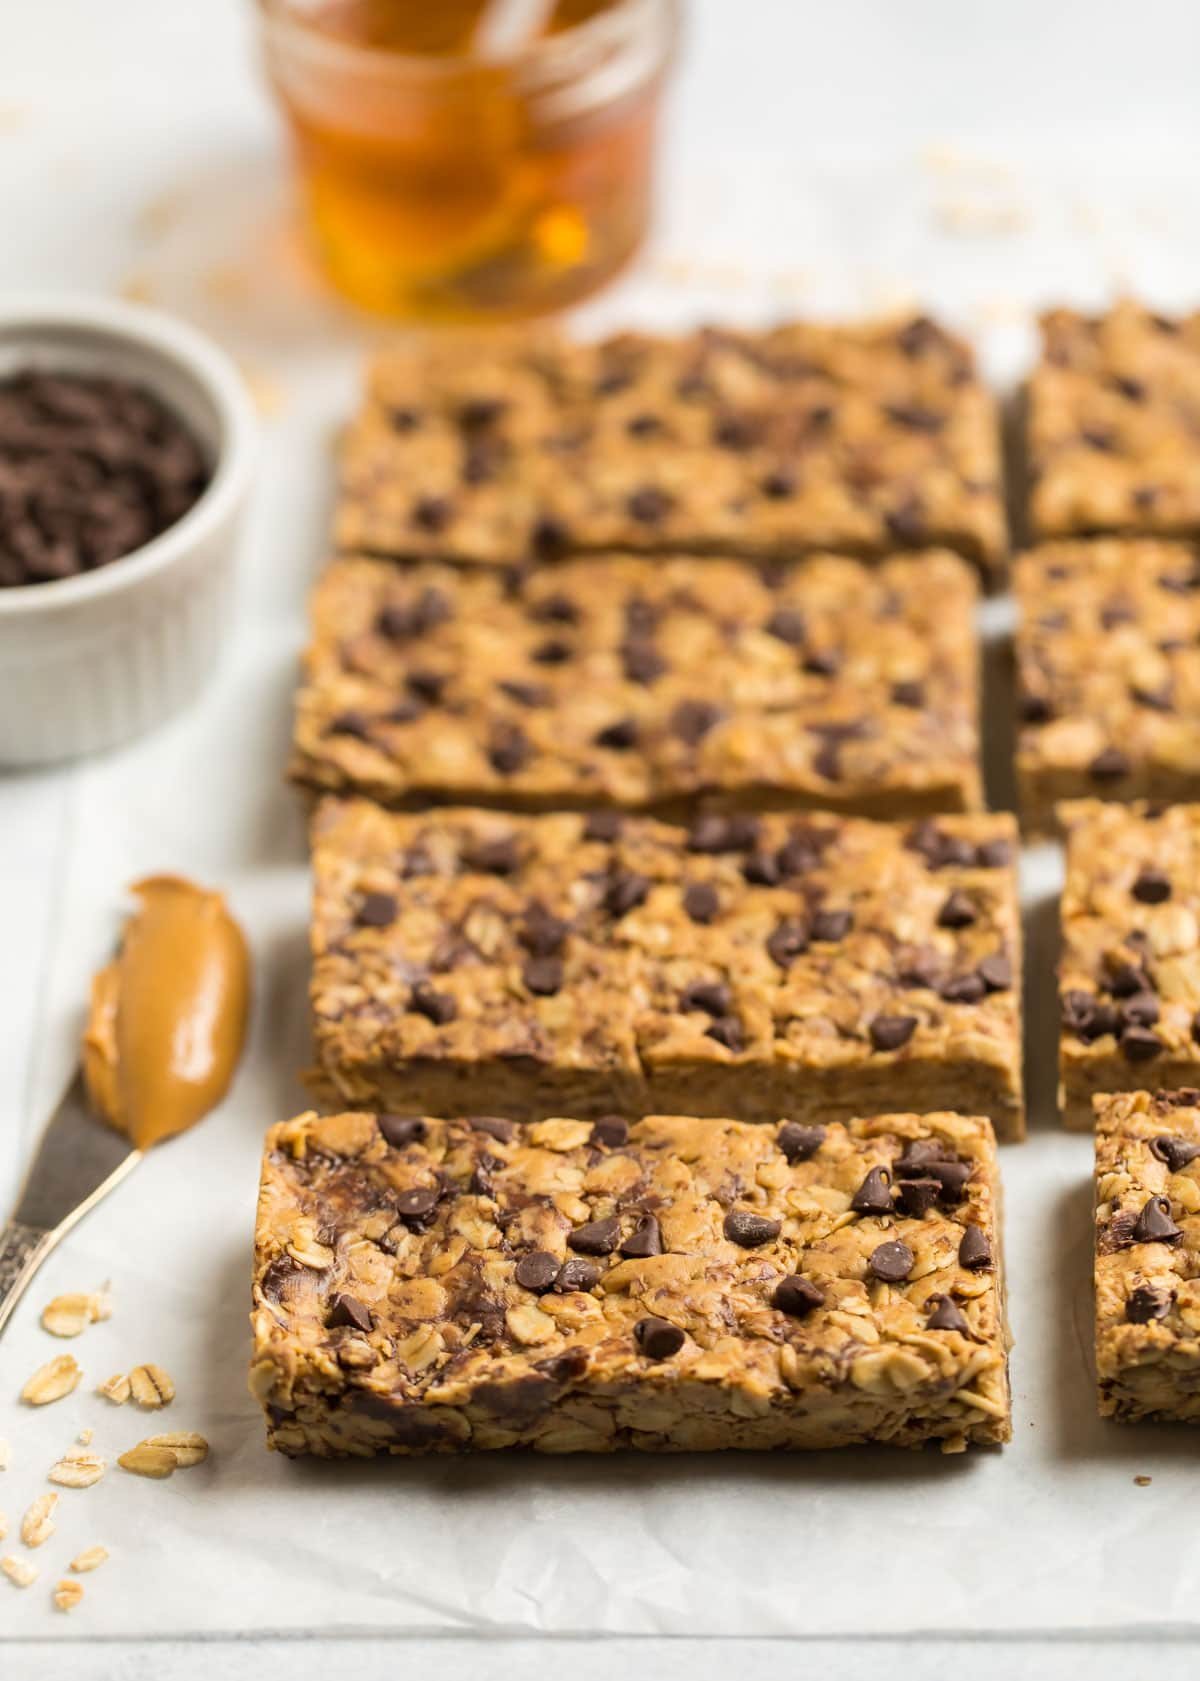 Chewy Peanut Butter Protein Bars. A protein-packed snack that's gluten free.